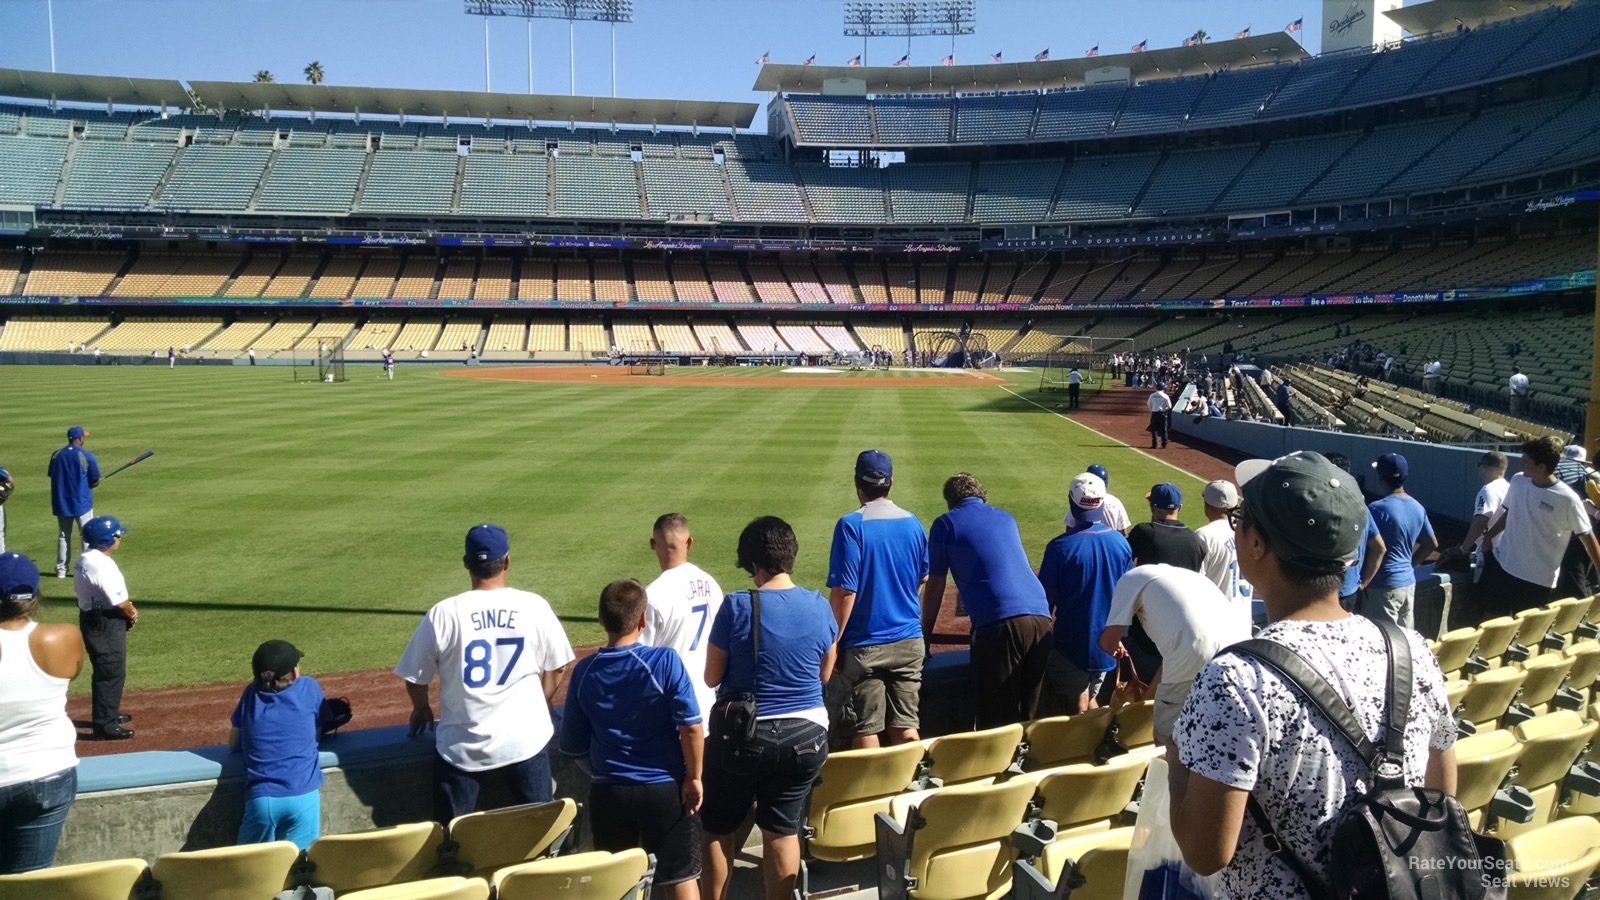 Dodger Stadium Section 53 - RateYourSeats.com